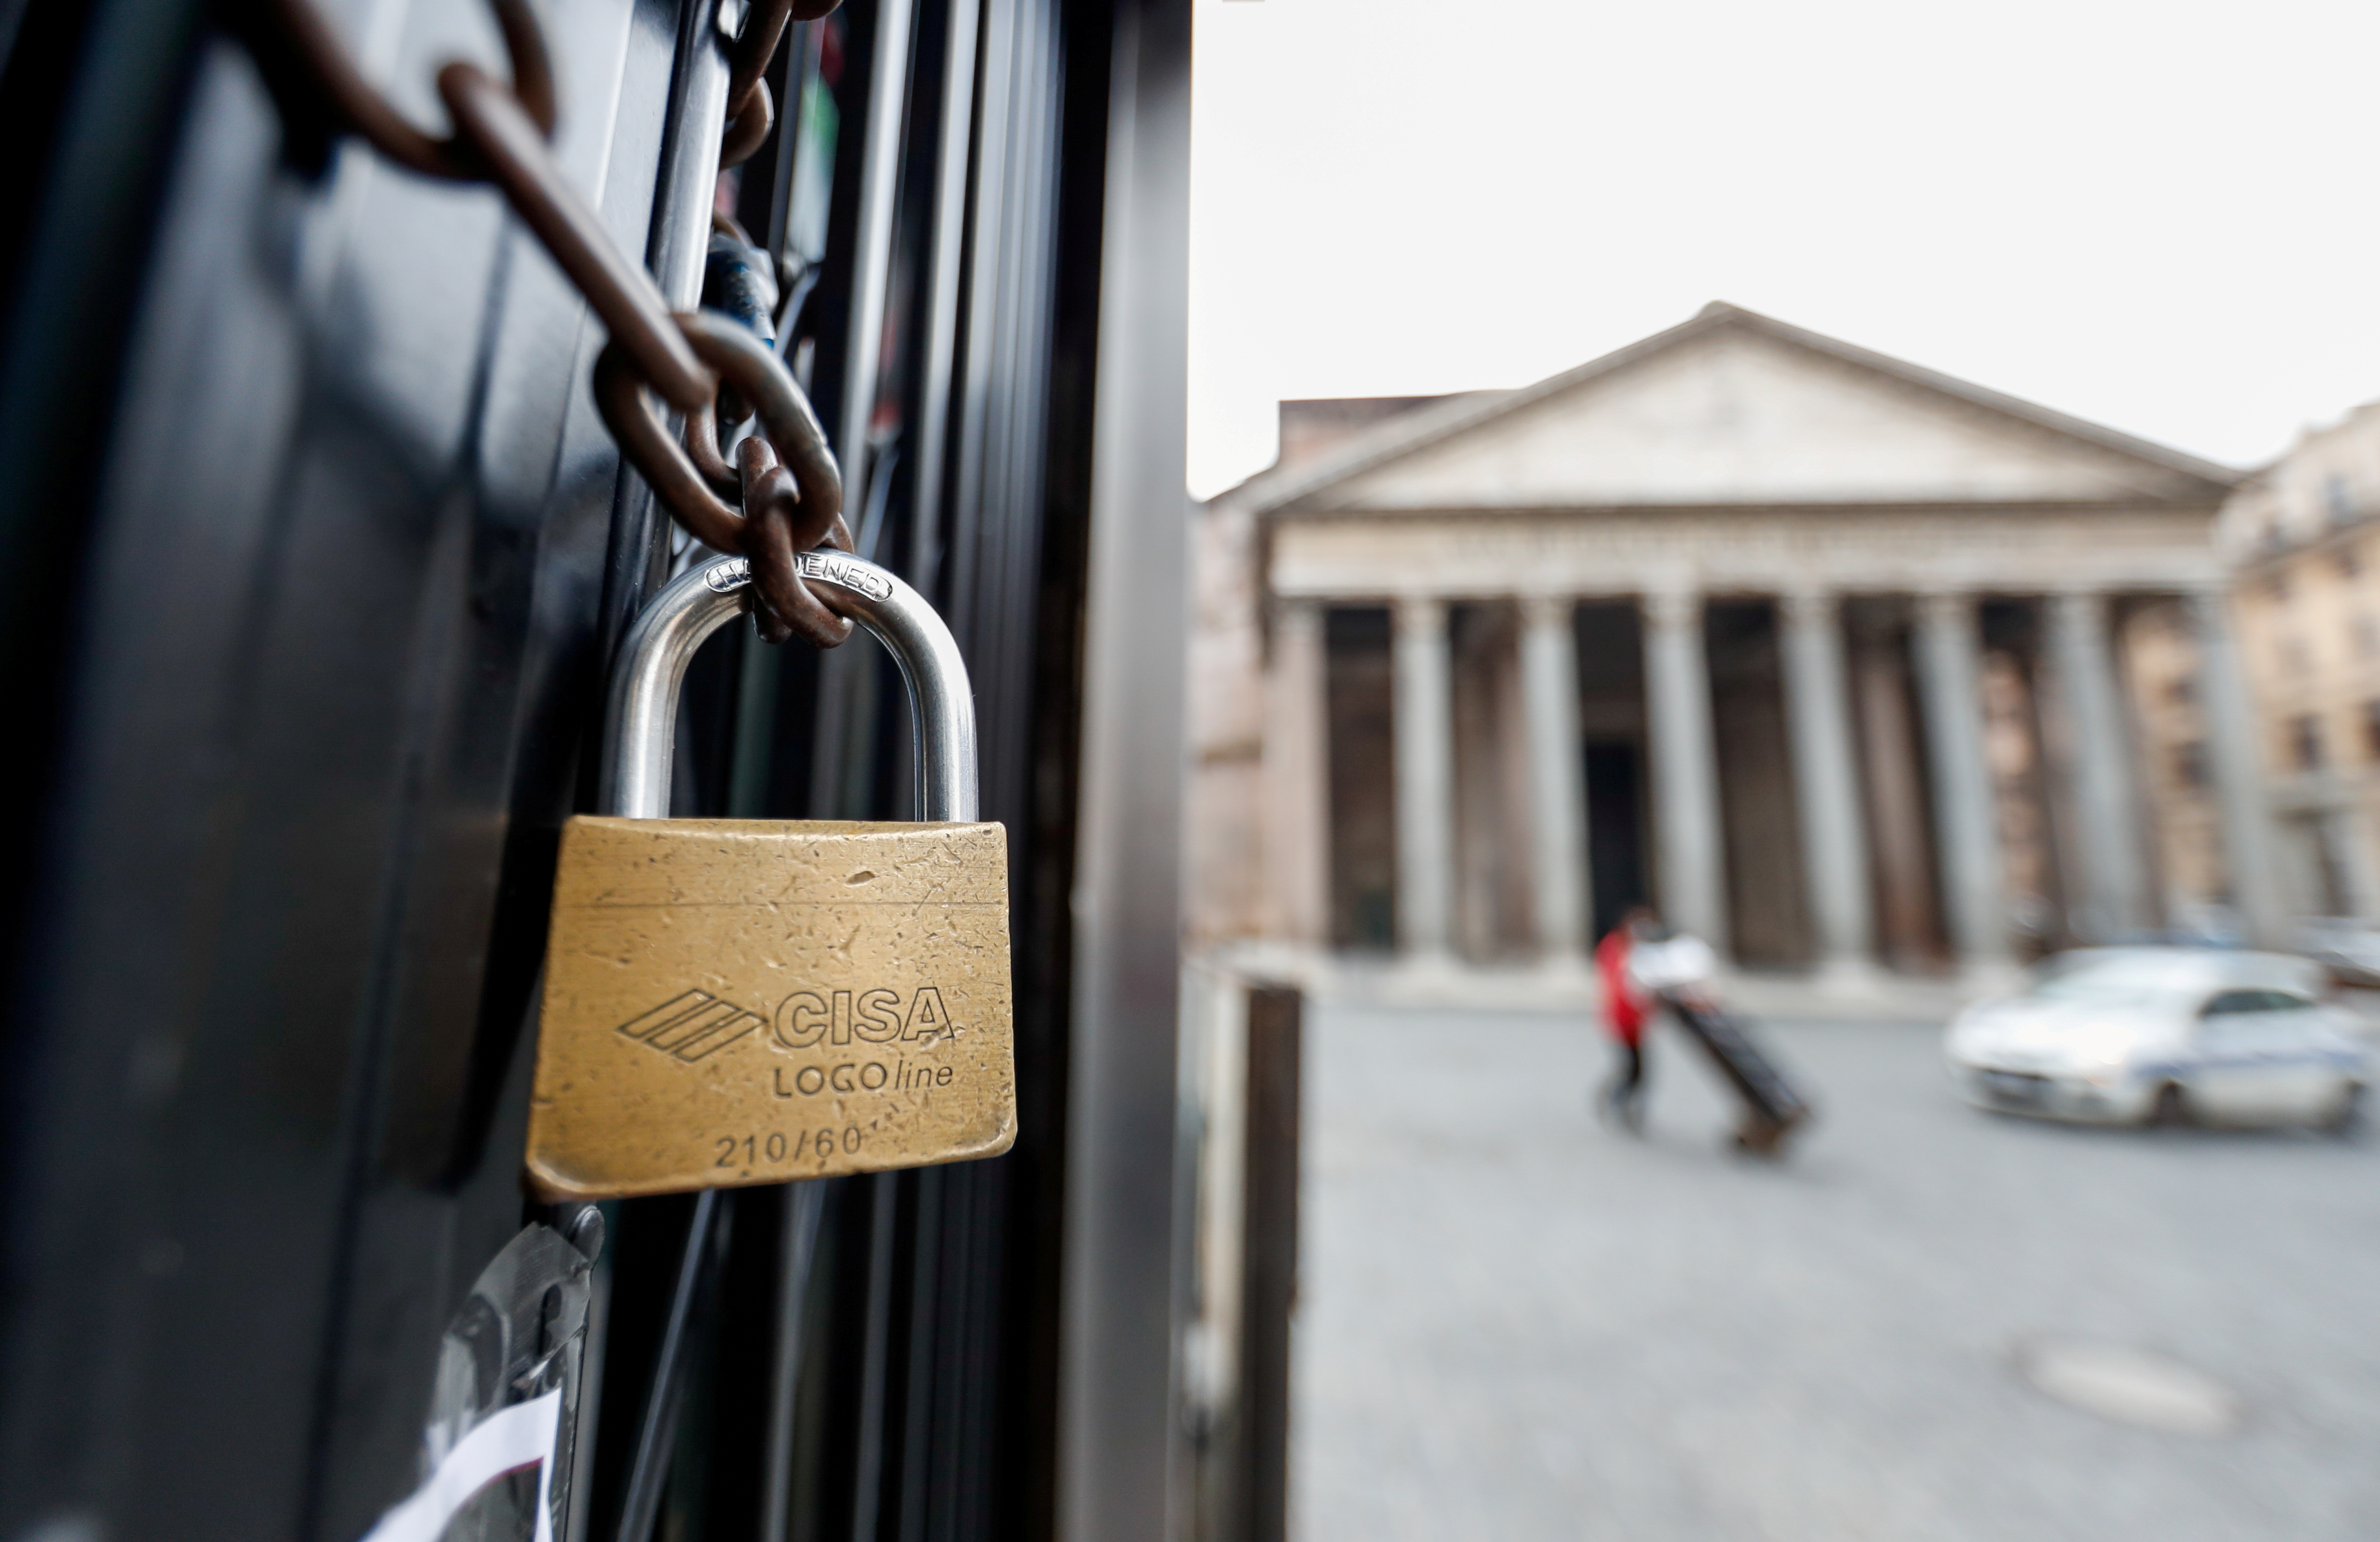 A padlock is seen on the door of a closed restaurant near the Pantheon, as the region enters the 'yellow zone' after the government relaxed some of the coronavirus disease (COVID-19) curbs on weekdays following a strict lockdown over the holidays, in Rome, Italy January 7, 2021. REUTERS/Yara Nardi